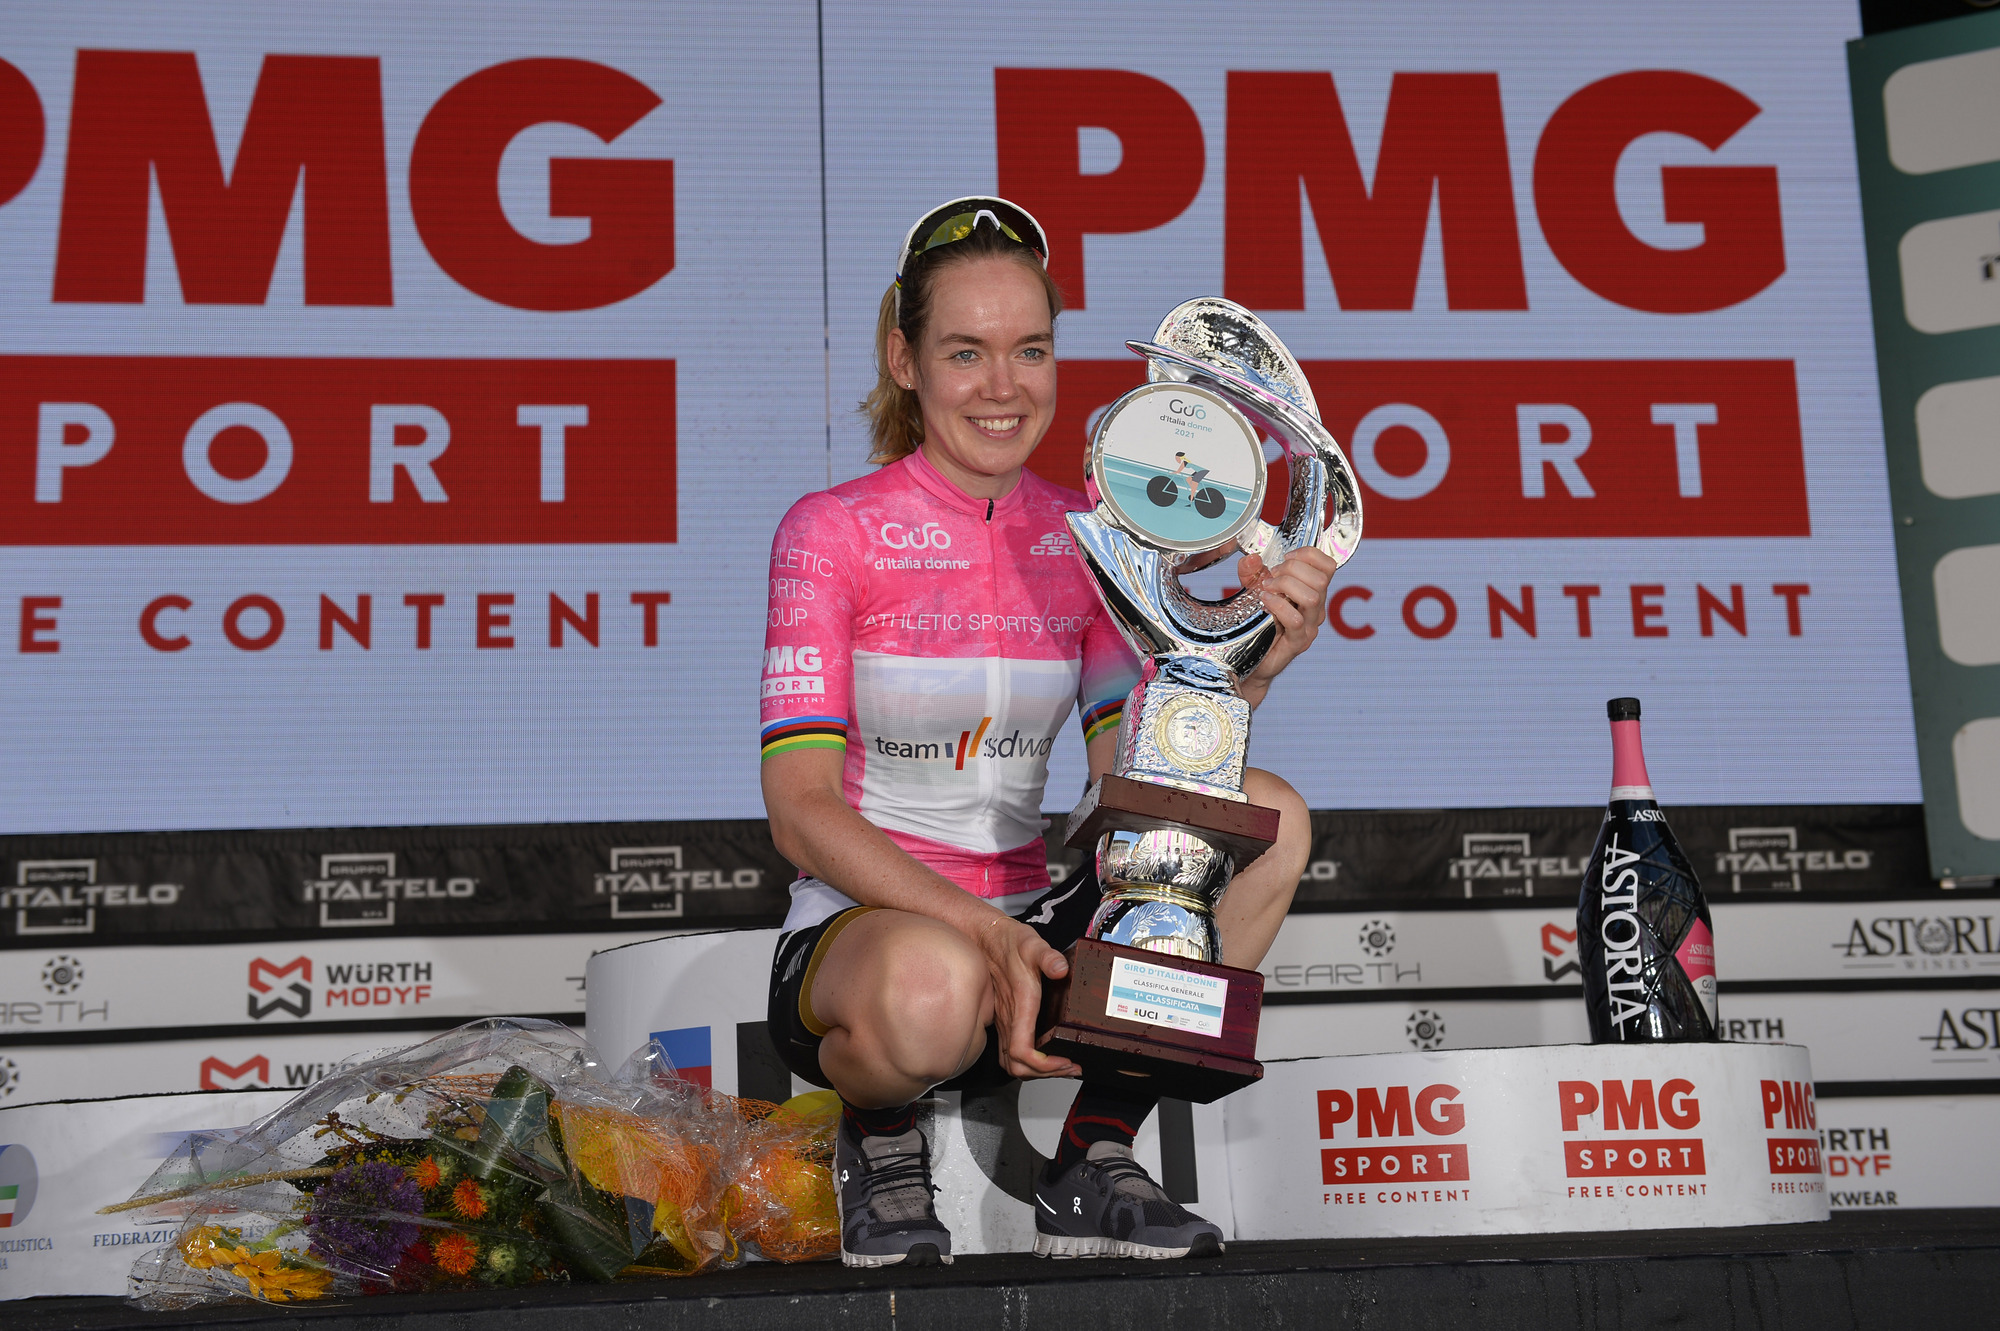 https://www.giroditaliadonne.it/2021/07/11/the-32nd-edition-of-the-giro-ditalia-donne-has-come-to-an-end-with-the-assignment-of-the-2021-maglia-rosa-to-anna-van-der-breggen/